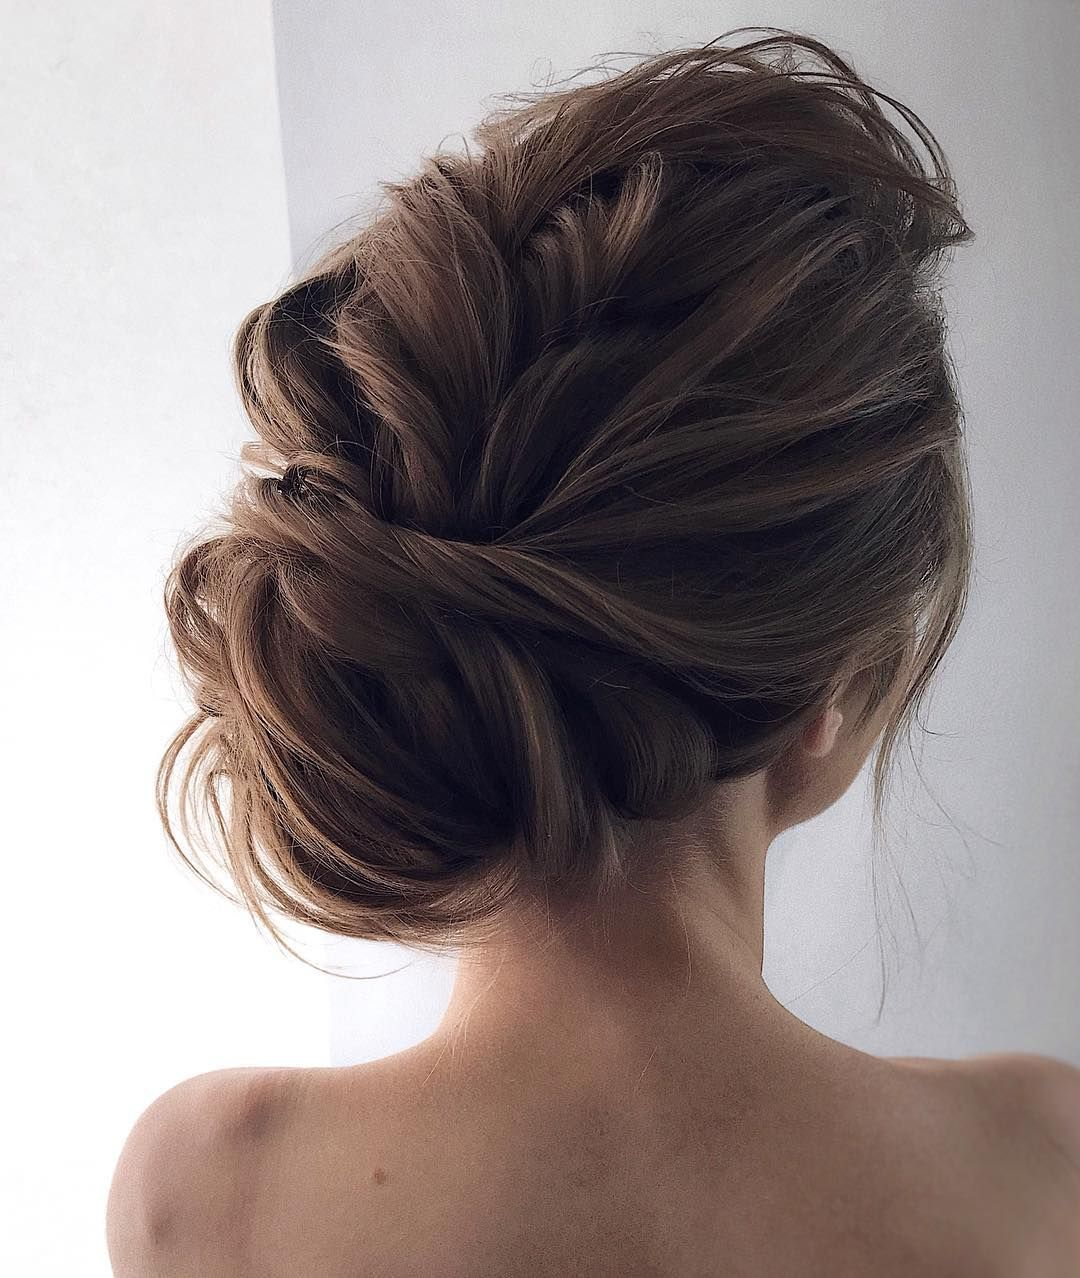 18 Creative And Unique Wedding Hairstyles For Long Hair: Gorgeous Wedding Updo Hairstyle To Inspire You